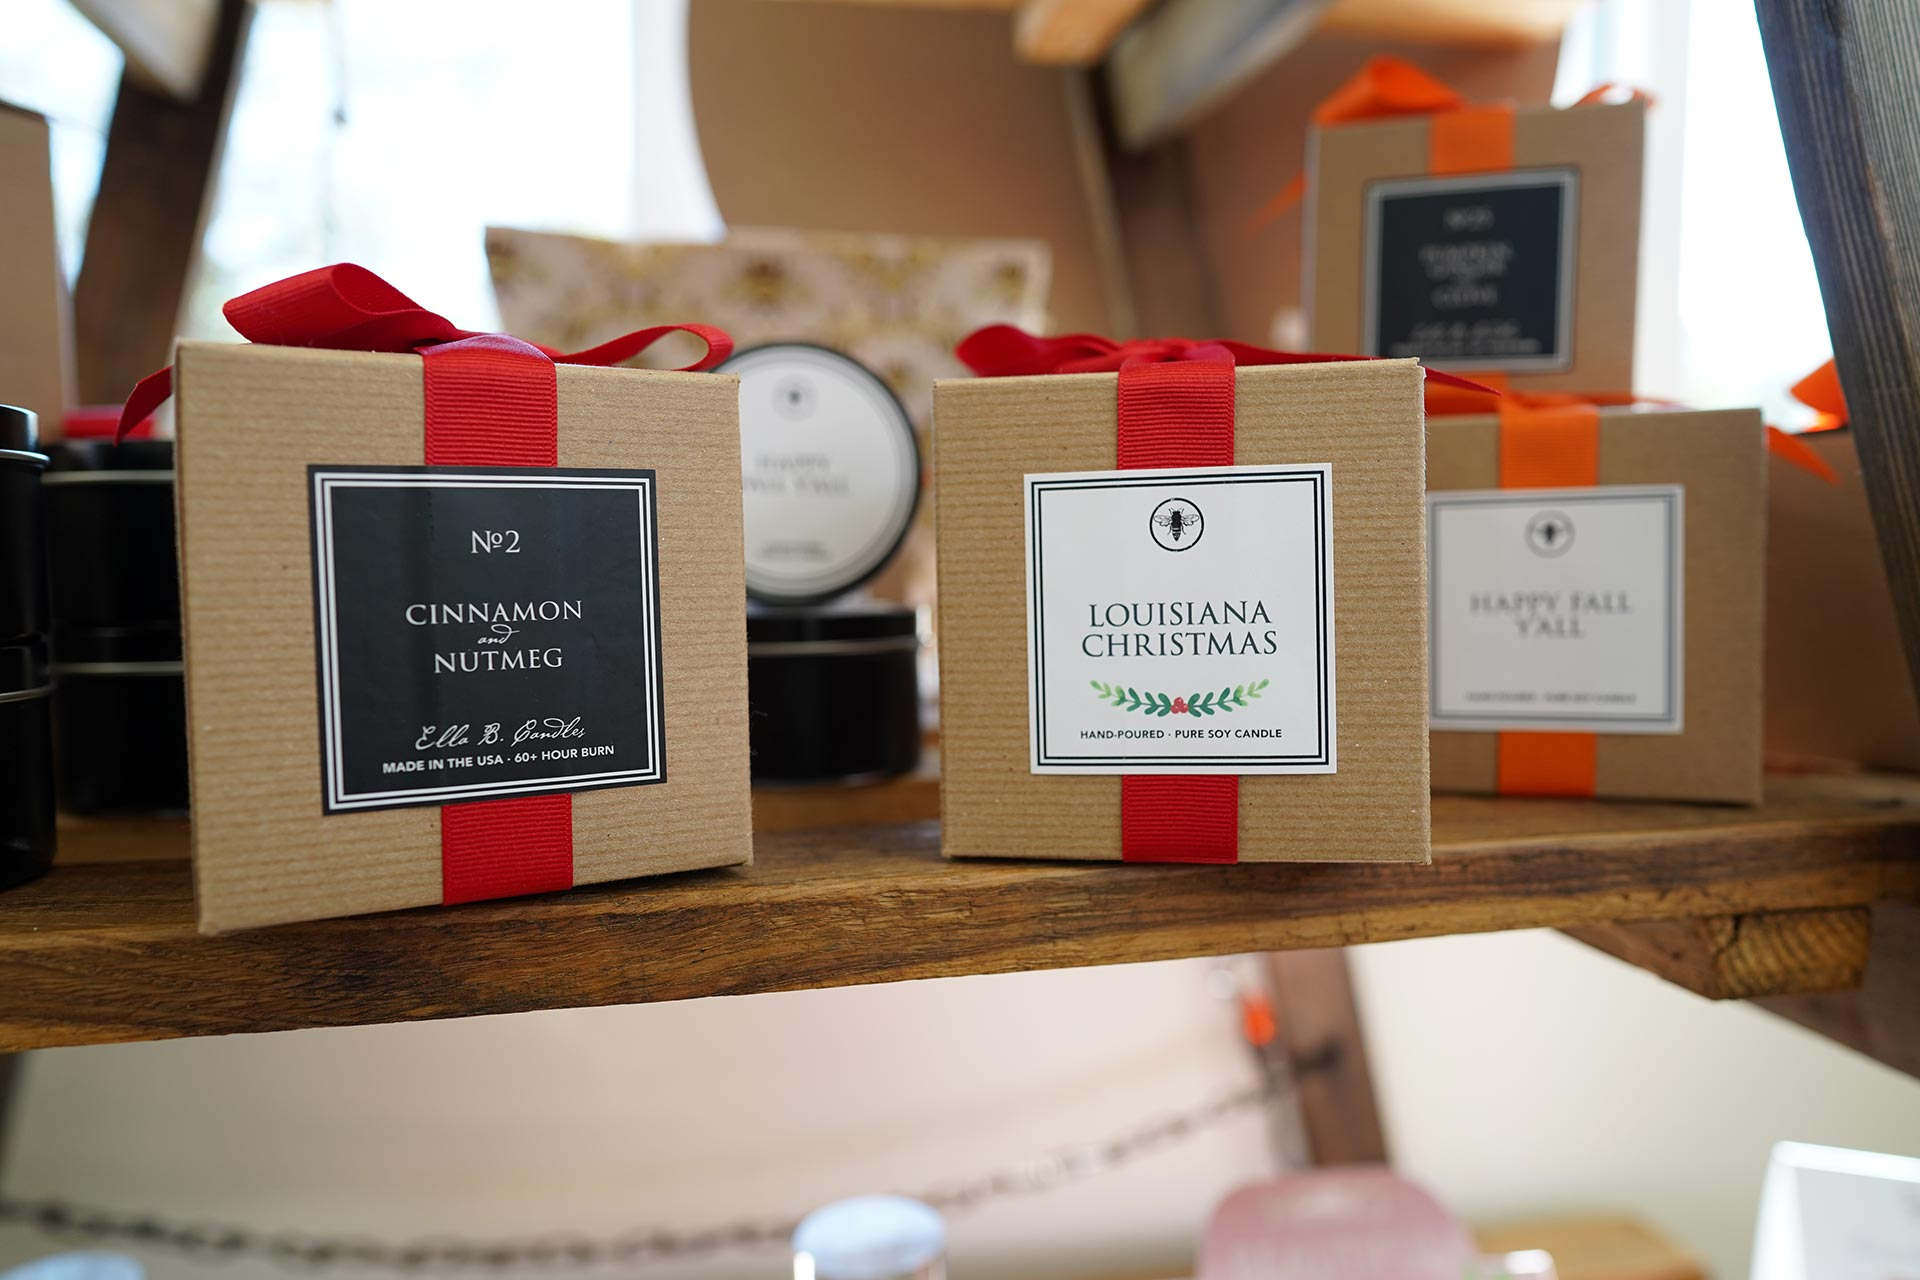 Seasonal Christmas scented and labeled candles